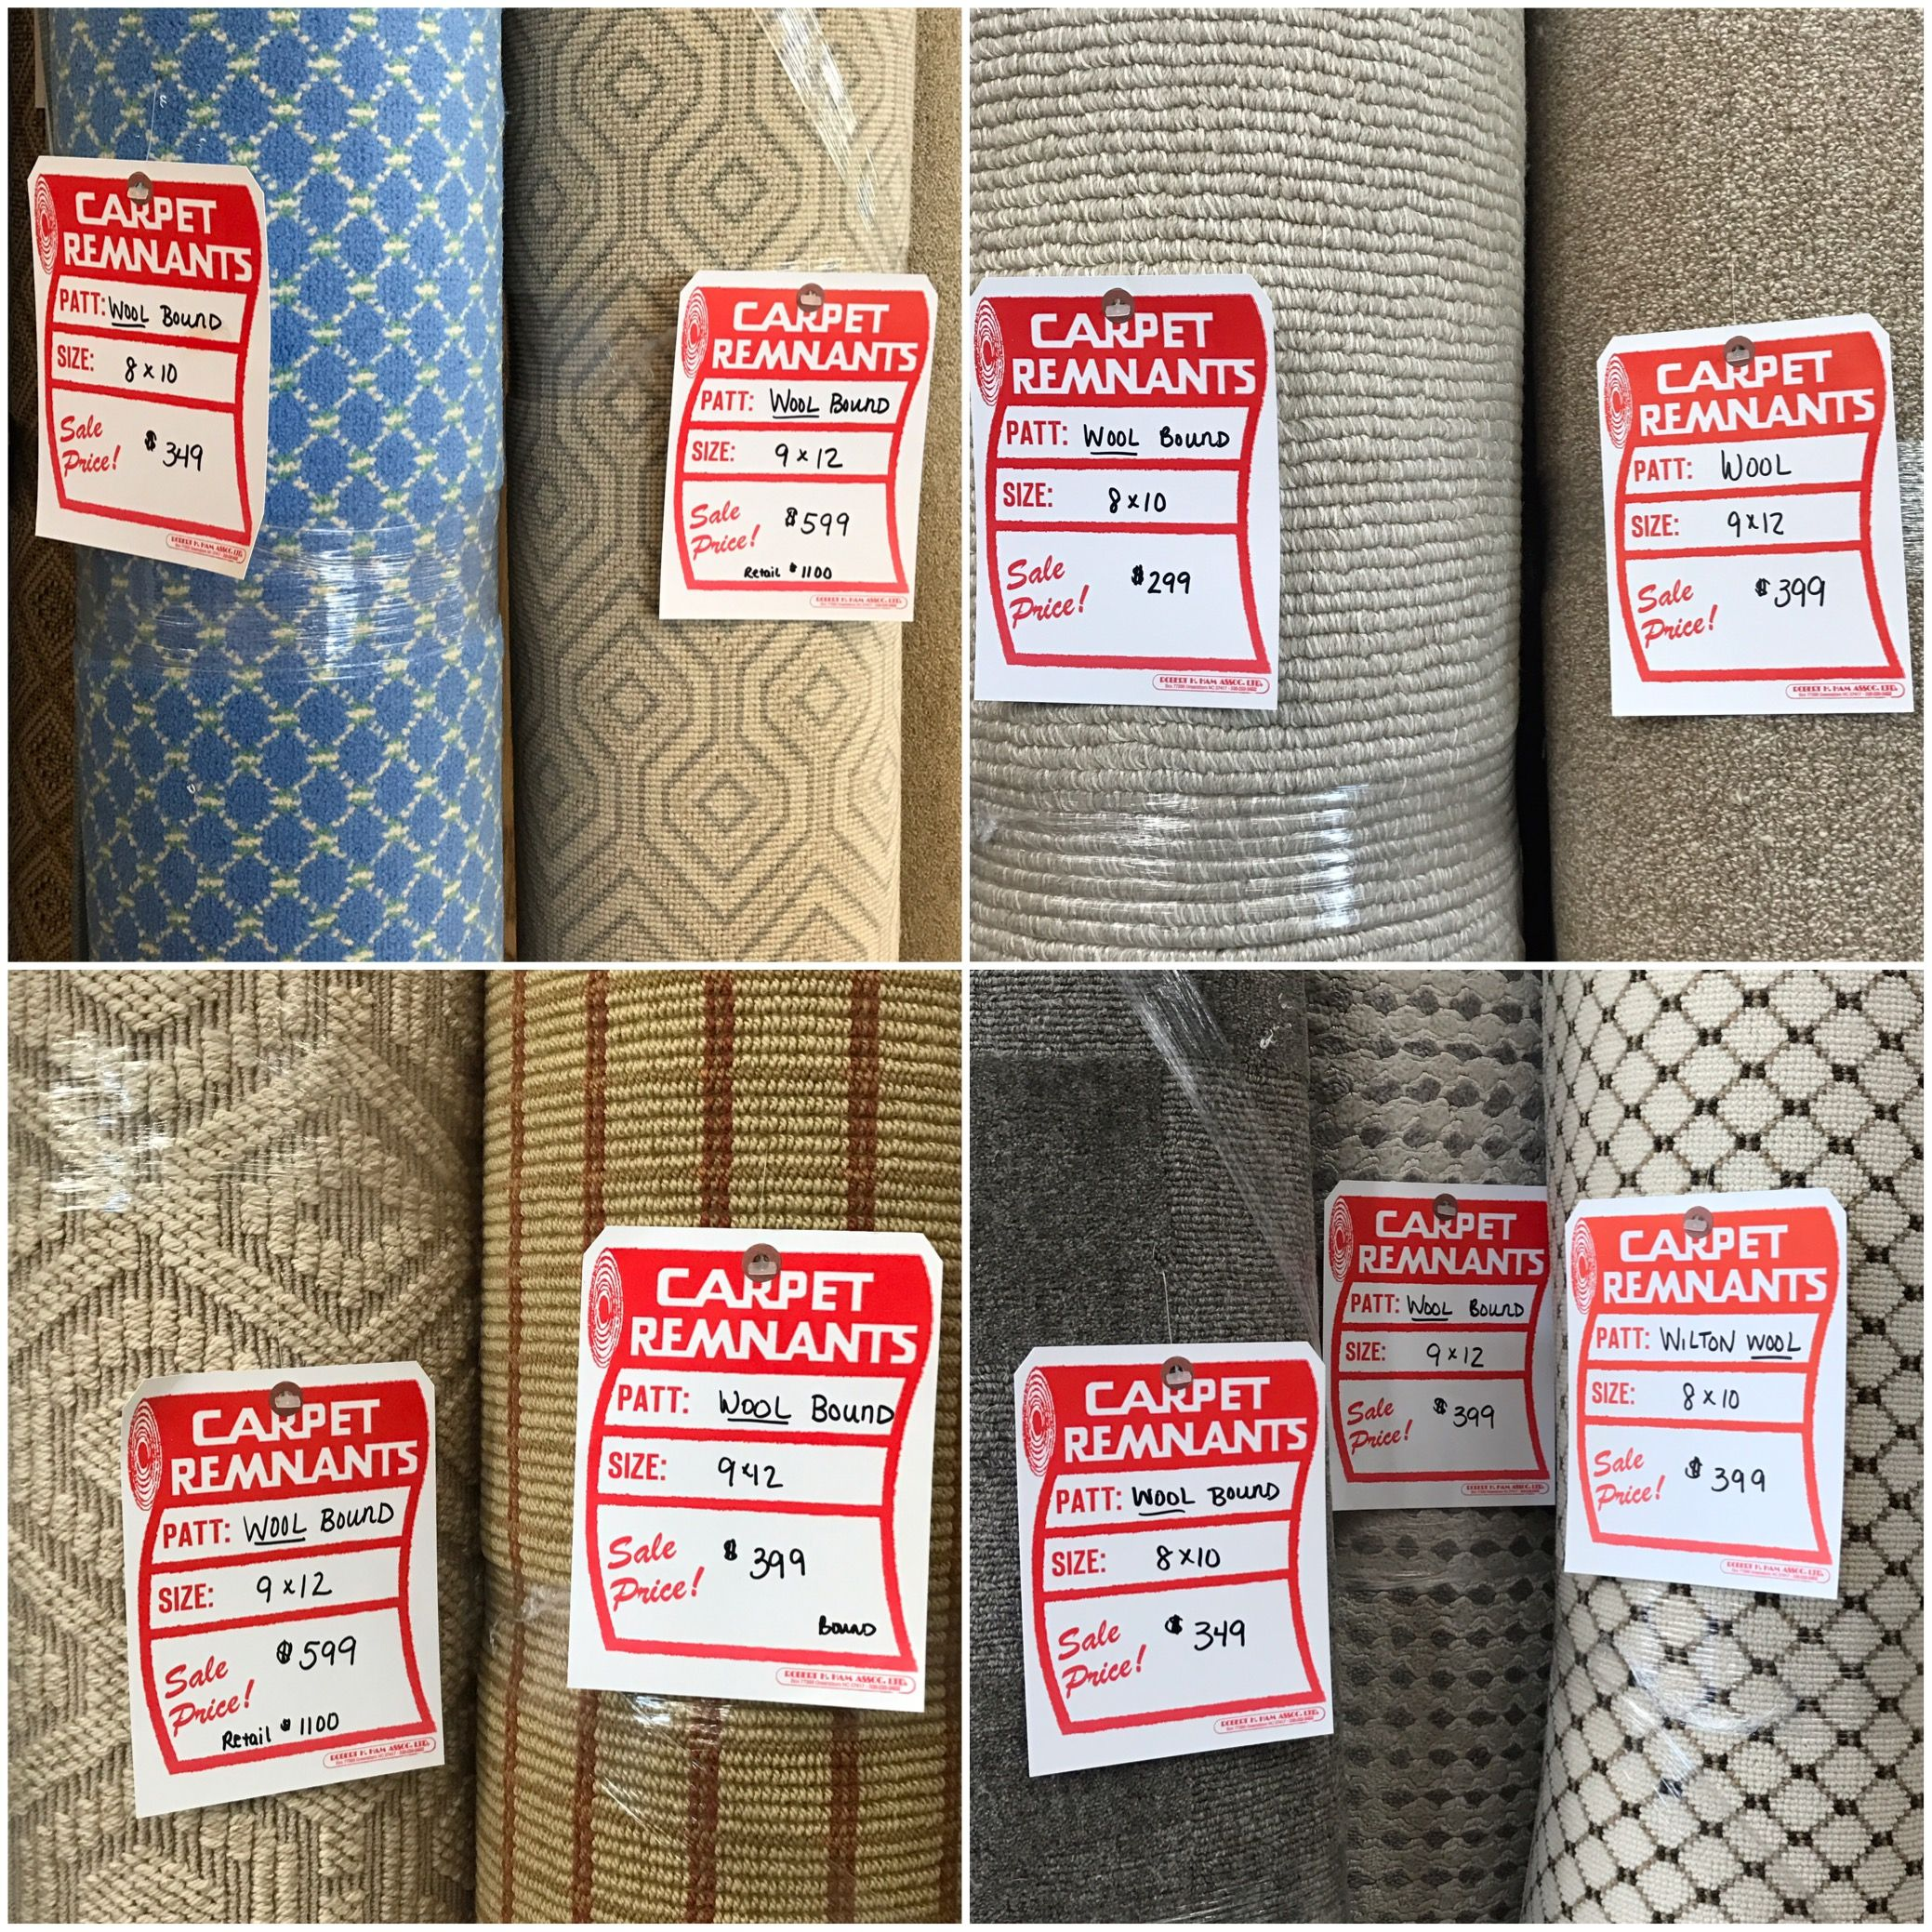 Just arrived! Bound wool area rugs, 8x10 & 9x12 Carpet